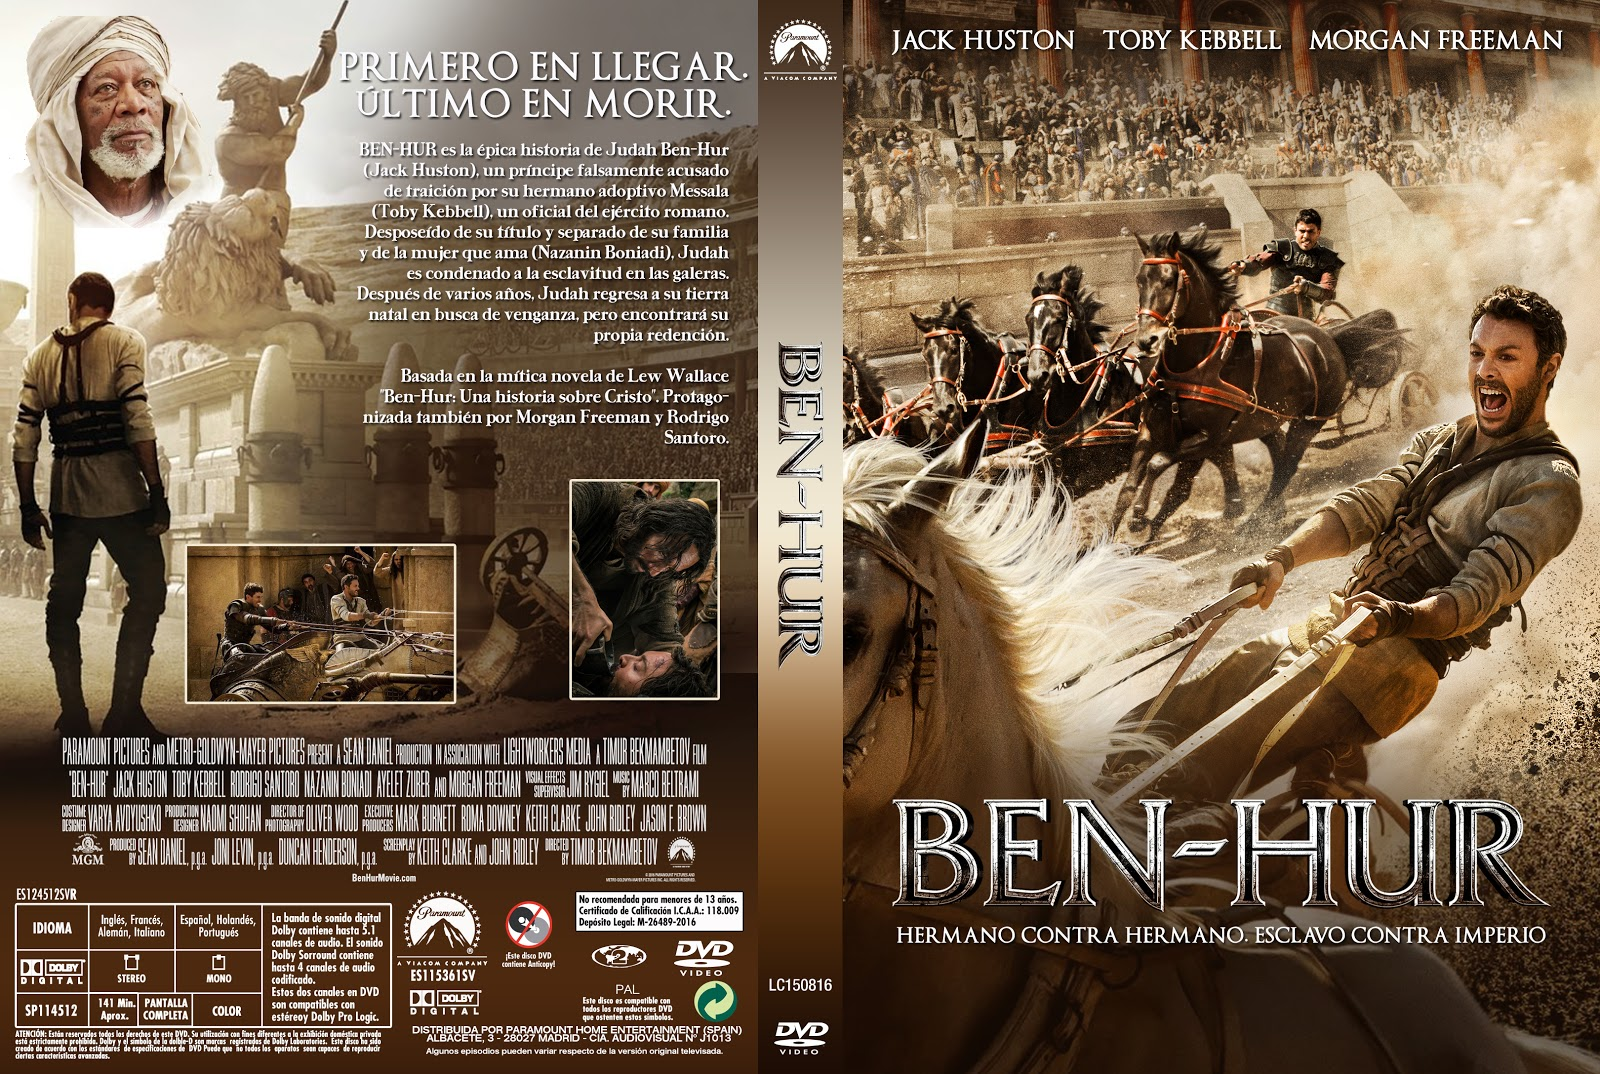 Download Ben-Hur BDRip Dual Áudio Download Ben-Hur BDRip Dual Áudio BEN HUR 2B 25282016 2529